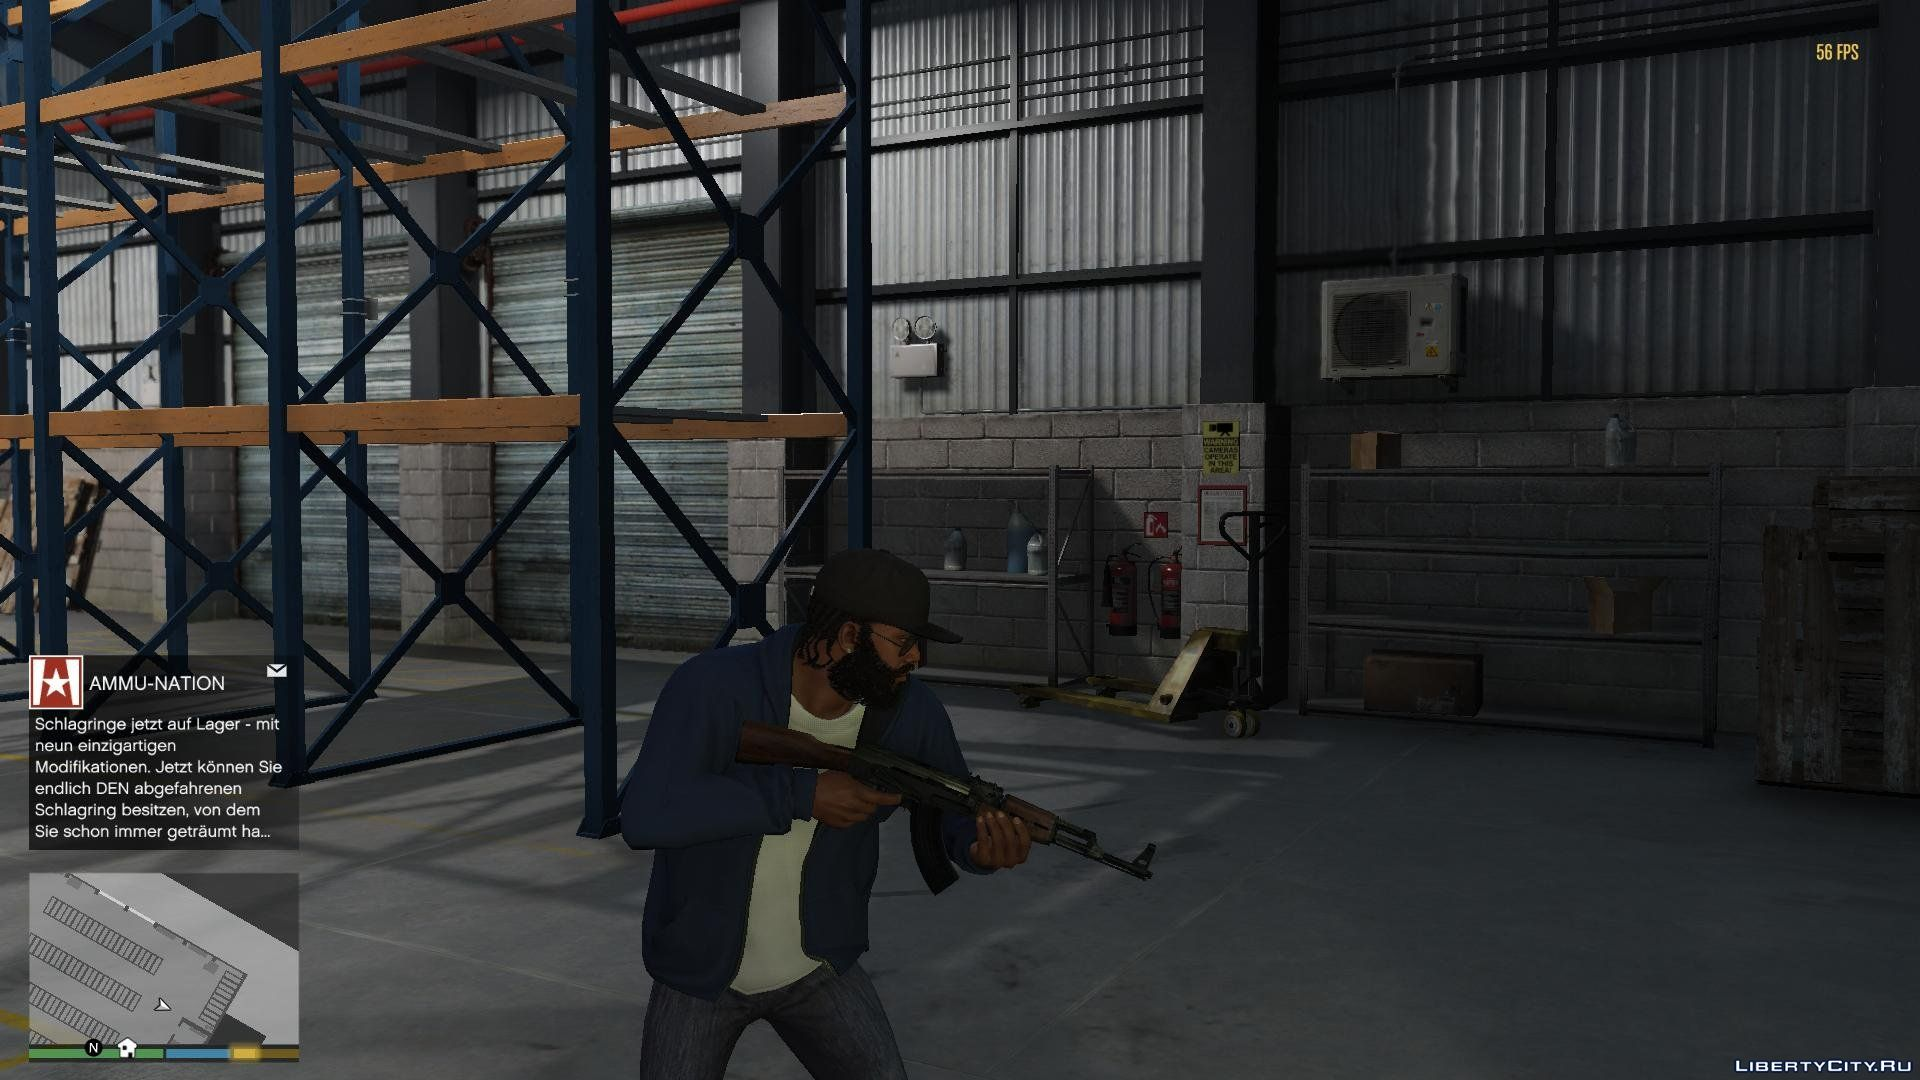 Mods for GTA 5: 2137 mod for GTA 5 / Files have been sorted